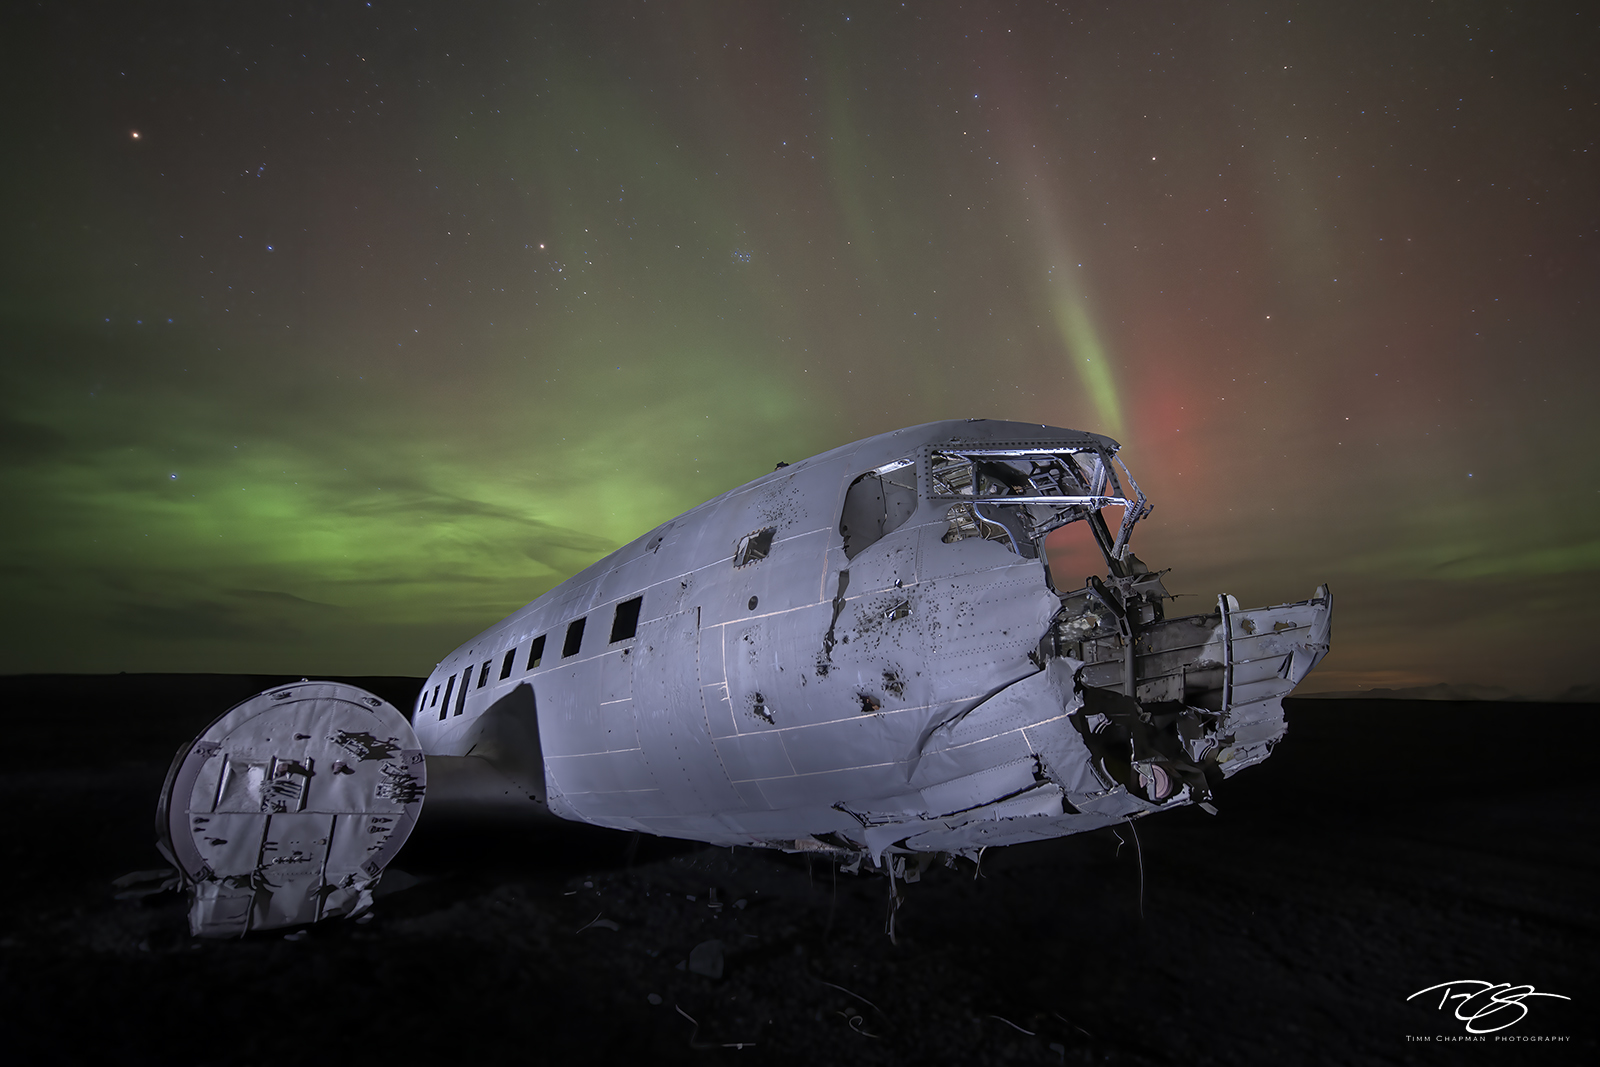 The Aurora Borealis dances above the corpse of a downed Dakota aircraft on a barren expanse in Southern Iceland